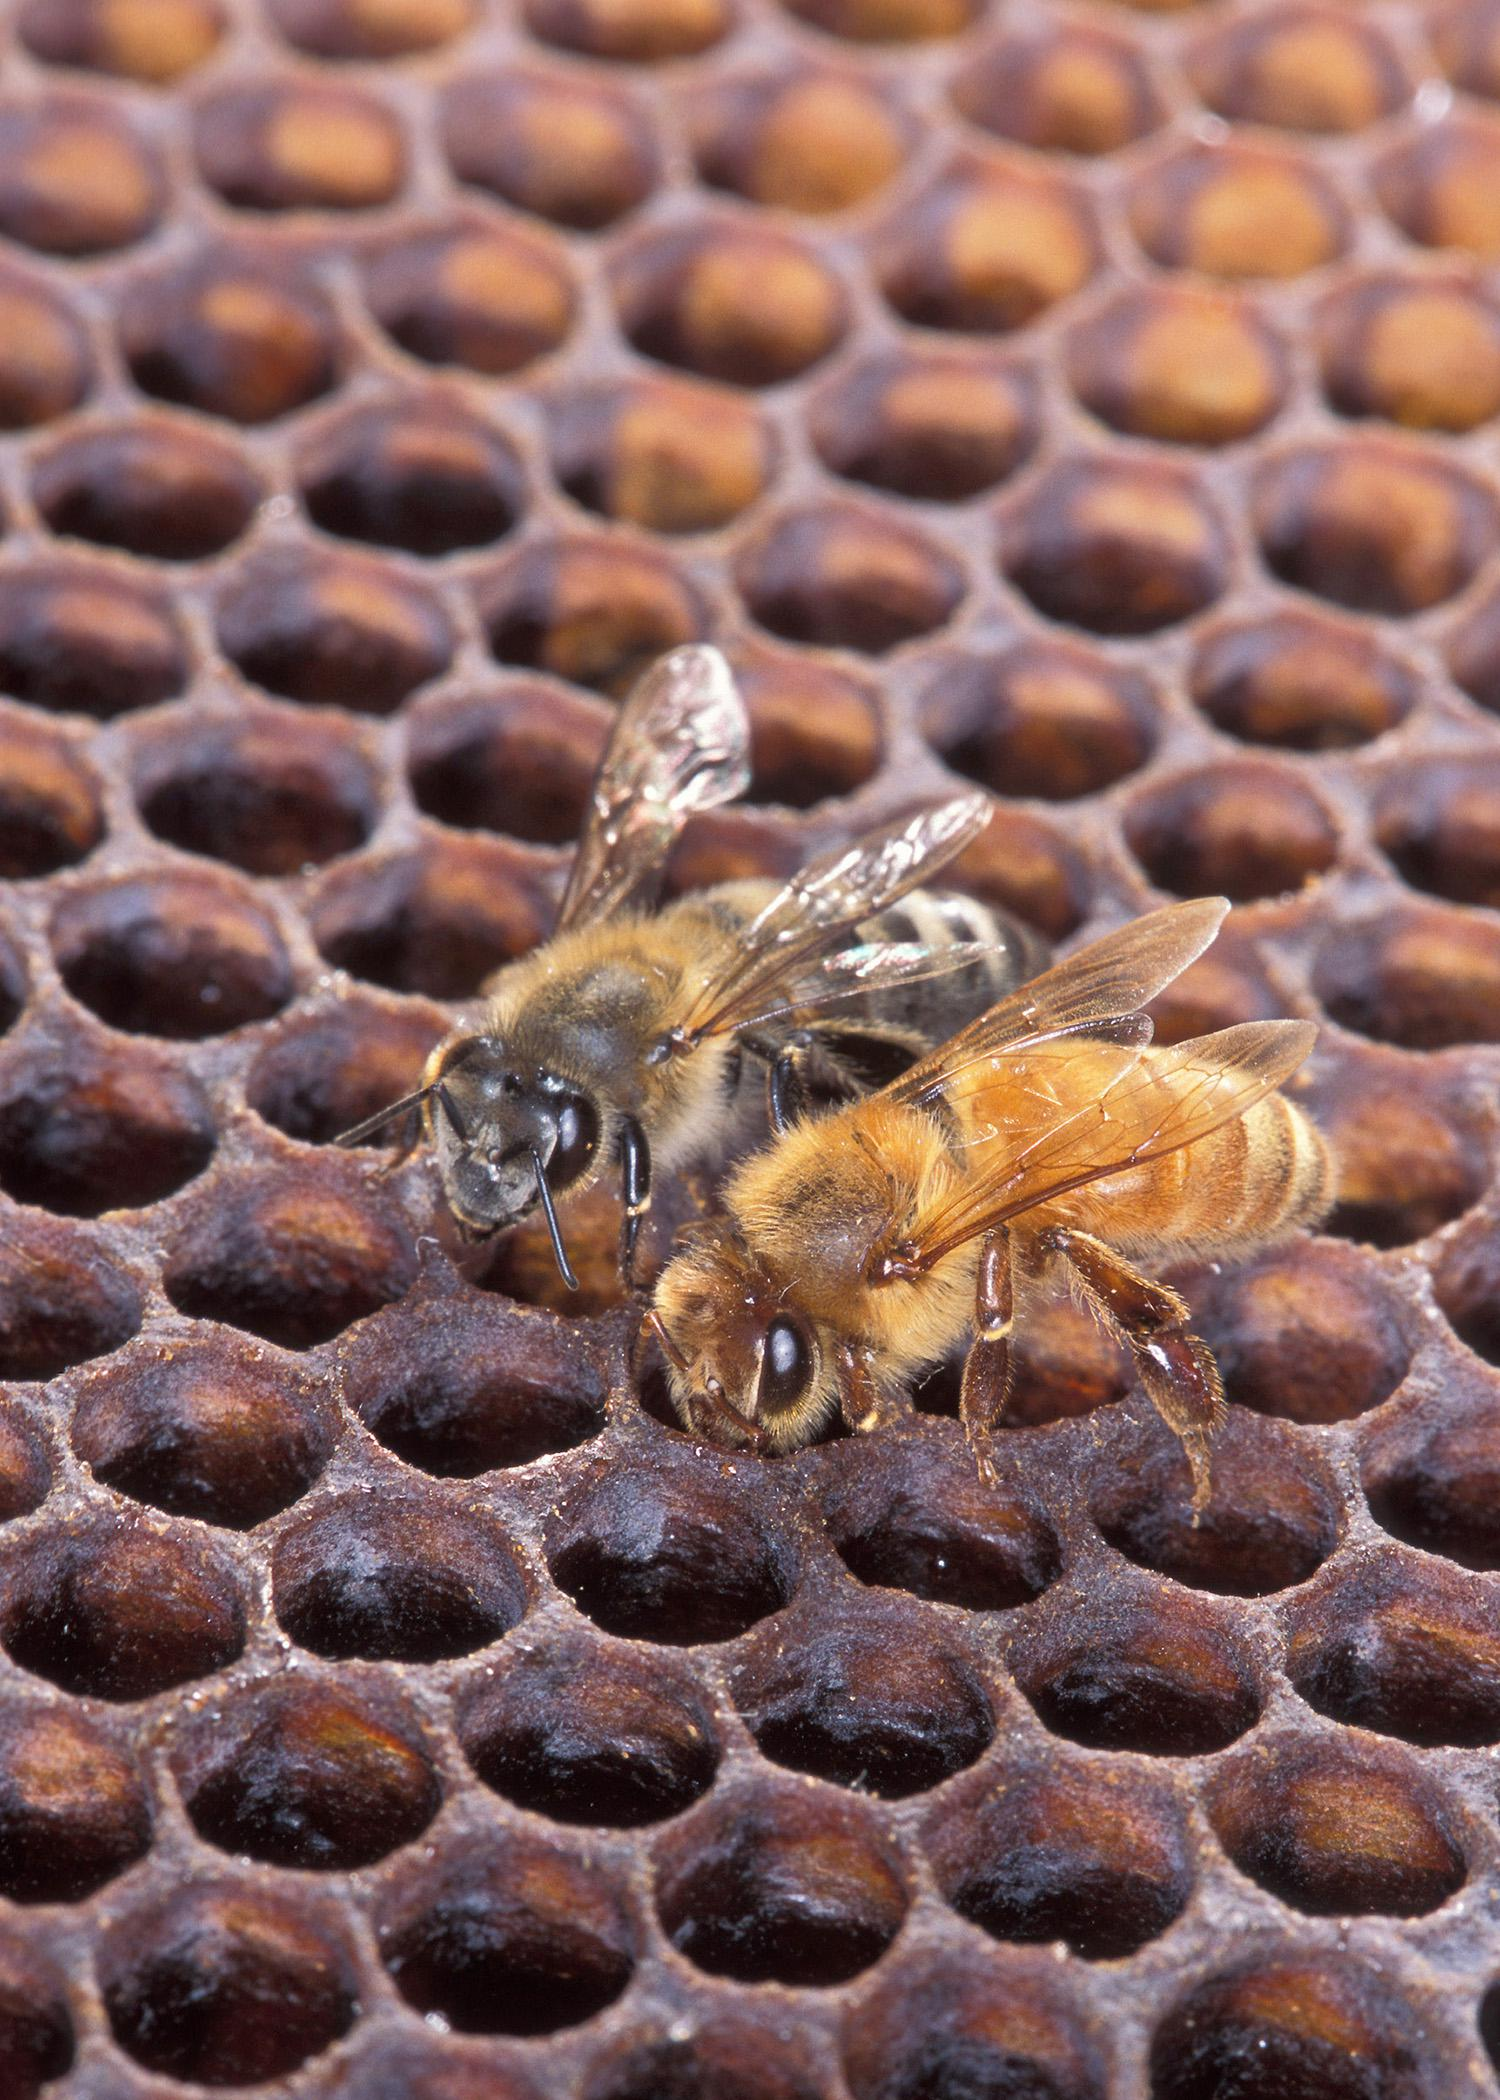 Despite color differences between this Africanized honeybee (left) and a European honeybee, it requires scientific analysis to distinguish between the two. (Photo by USDA-Agricultural Research Service/Scott Bauer)